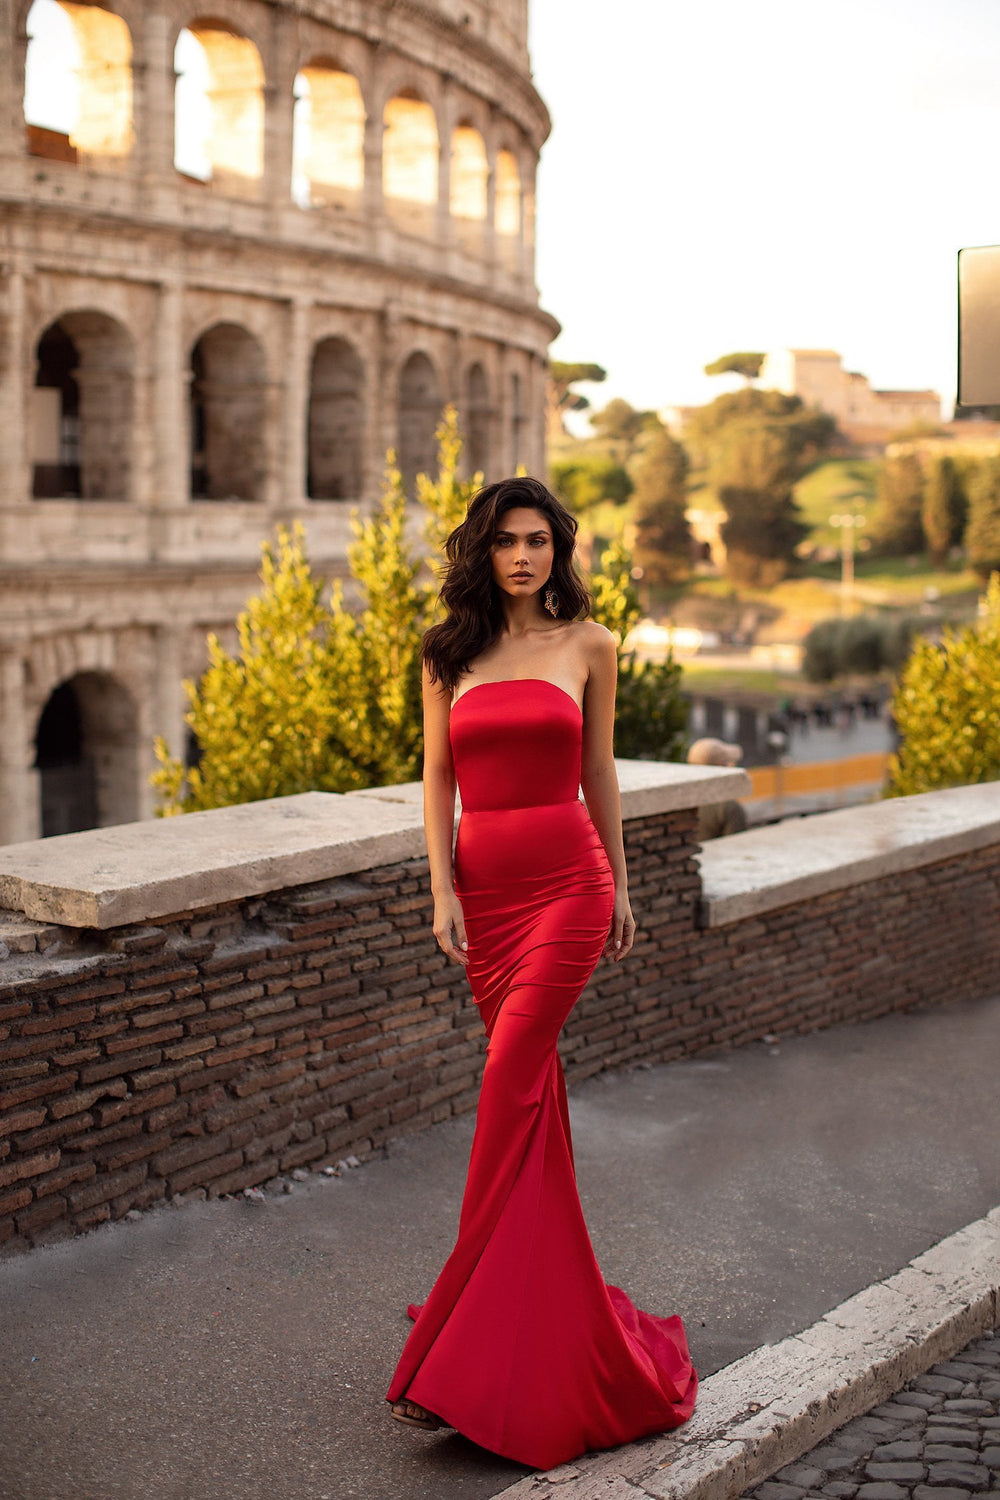 Acacia - Red Strapless Satin Gown with Mermaid Train